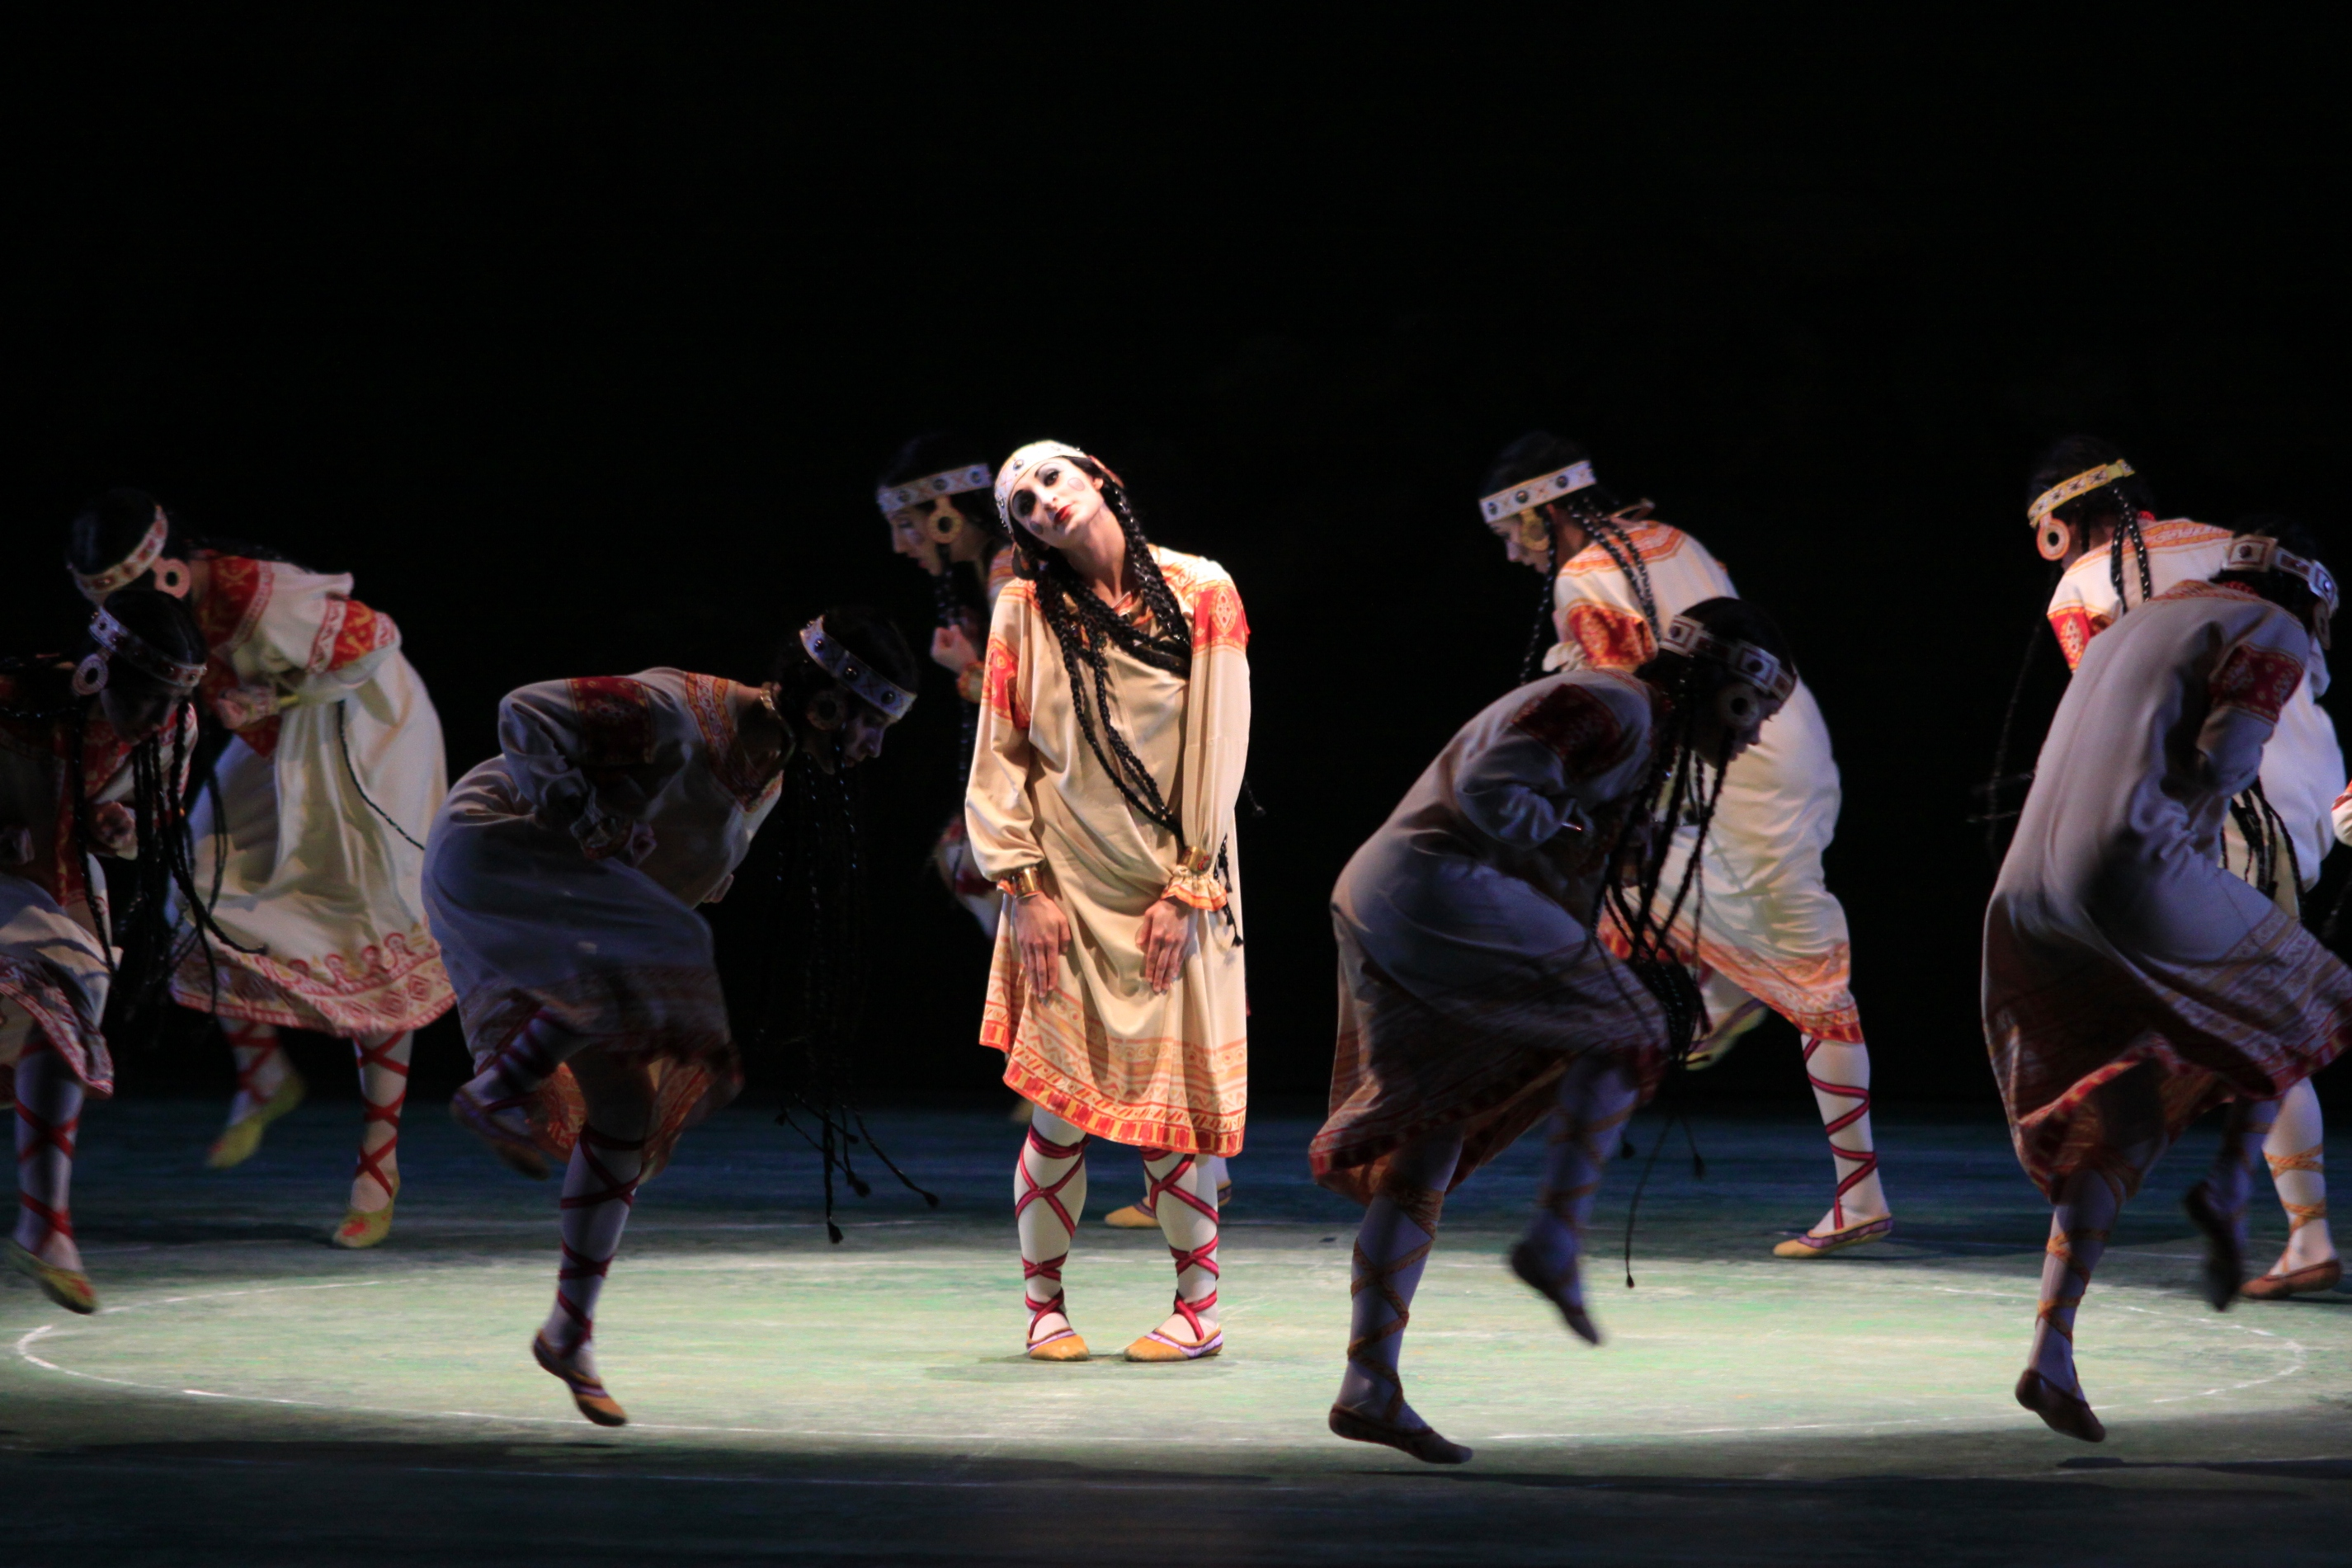 a review of nijinskys ballet rite of spring The mariinsky ballet in nijinsky's the rite of spring and the mariinsky ballet/sasha waltz & guests in sasha waltz's sacre on 29, 30.